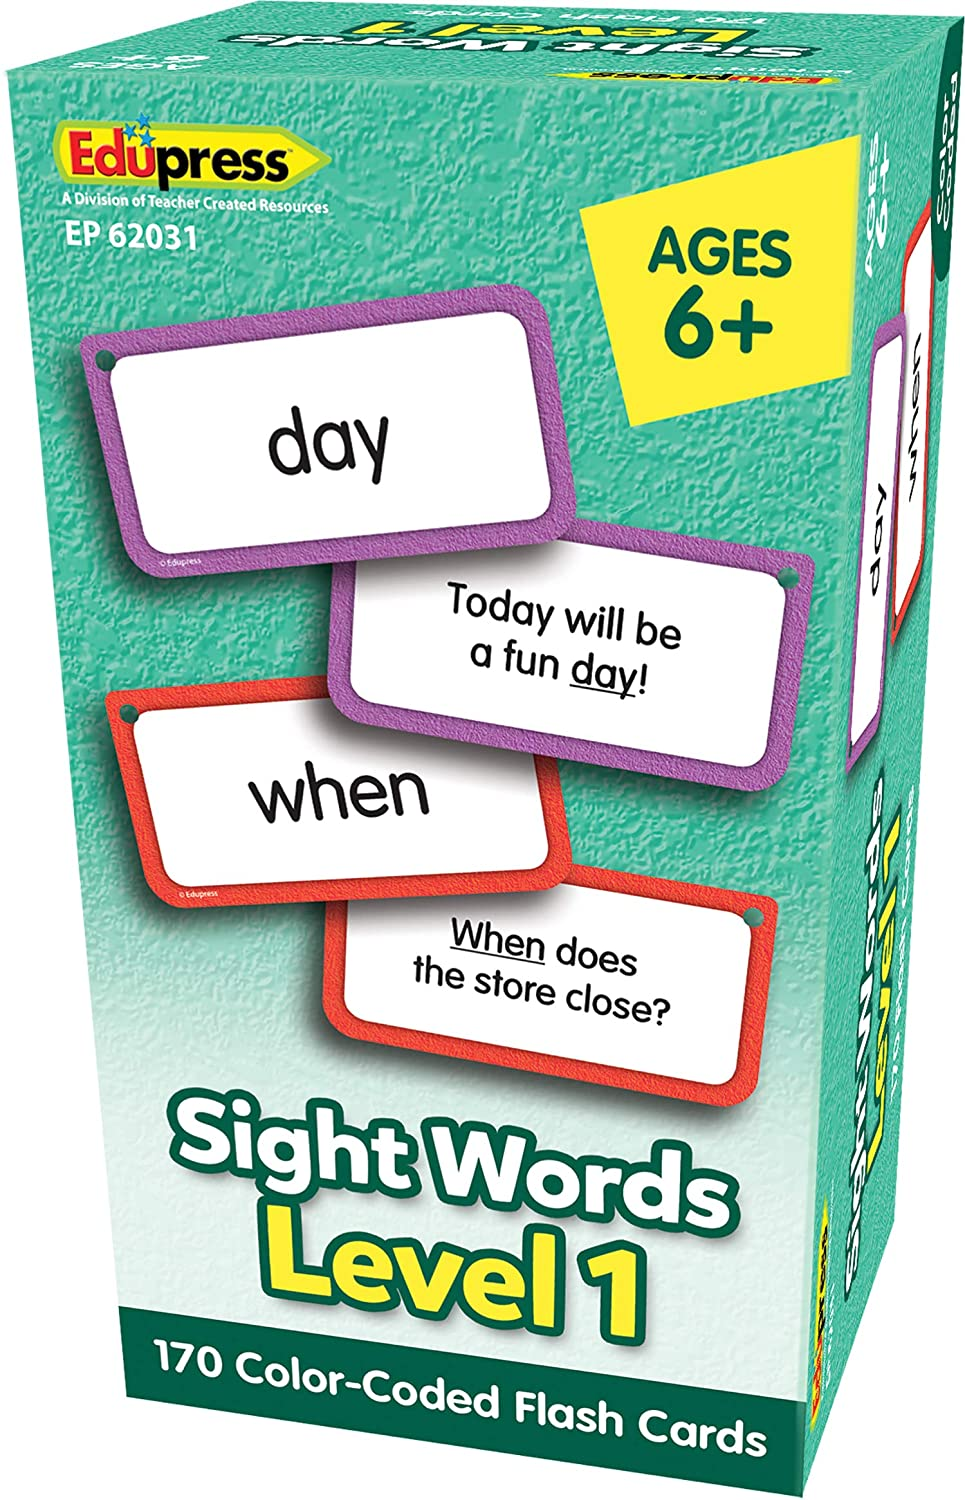 Sight Words Flash Cards Level 1